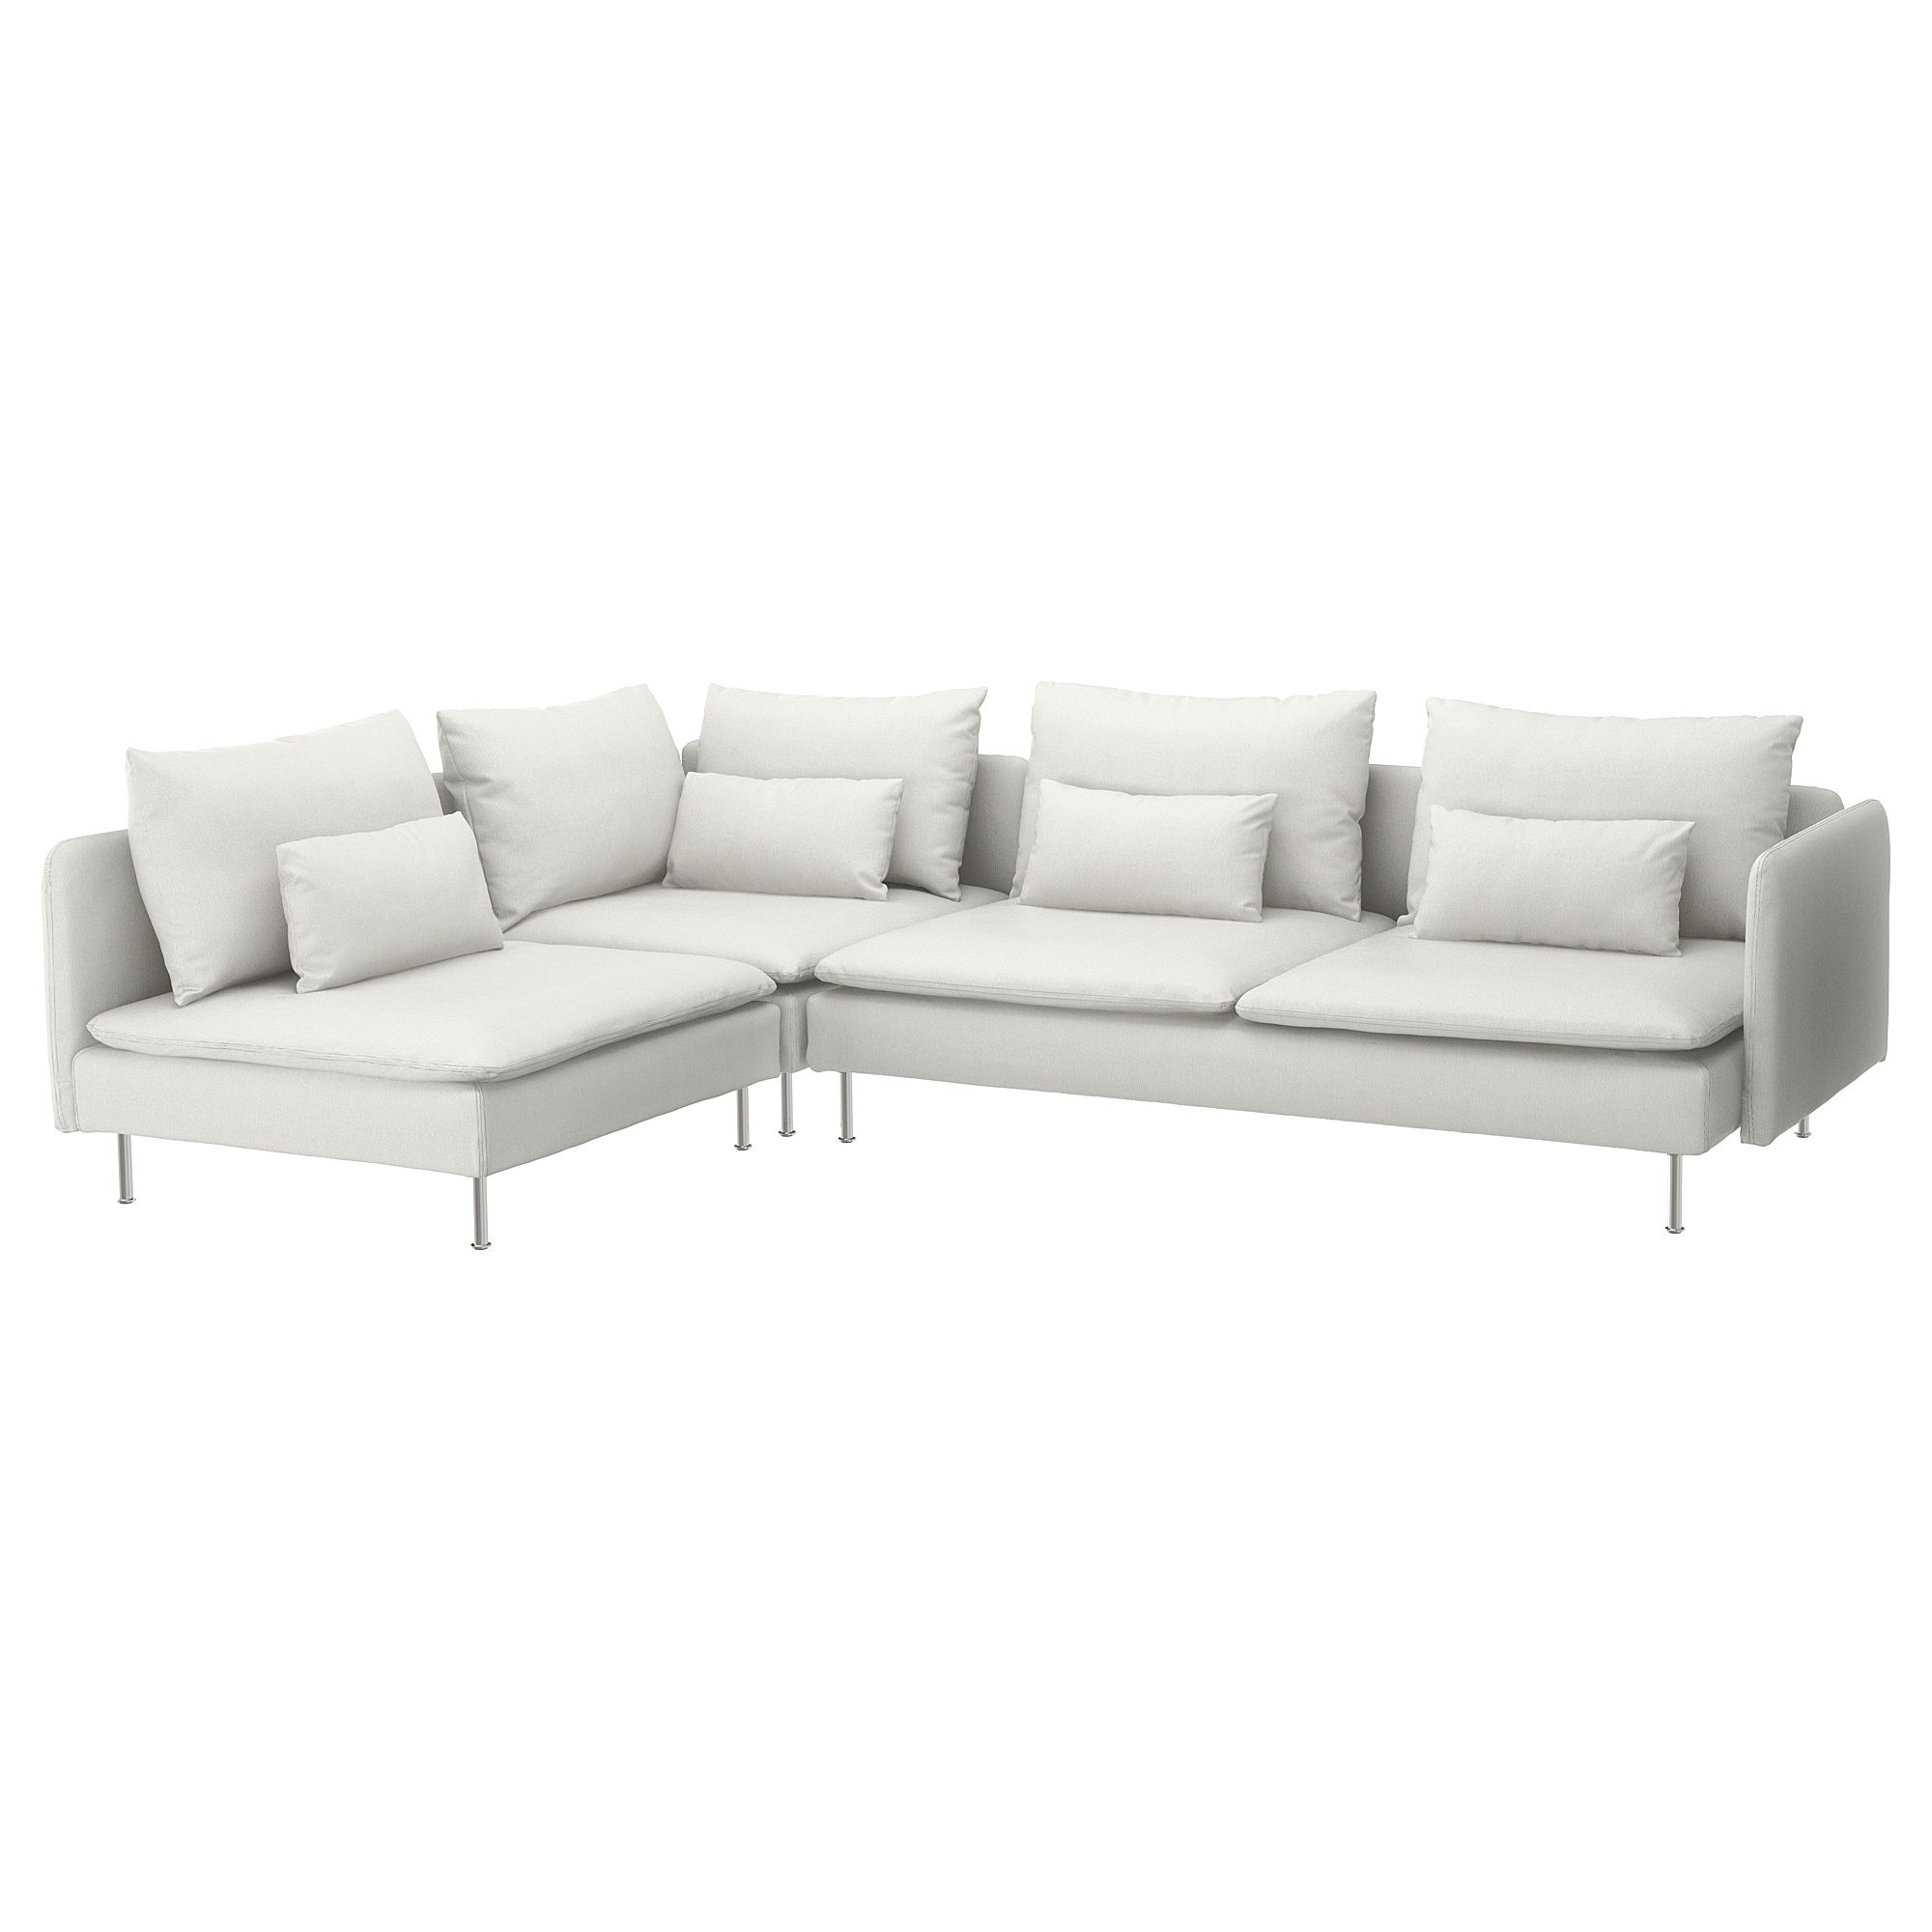 SÖDERHAMN Sectional, 4seat corner with open end